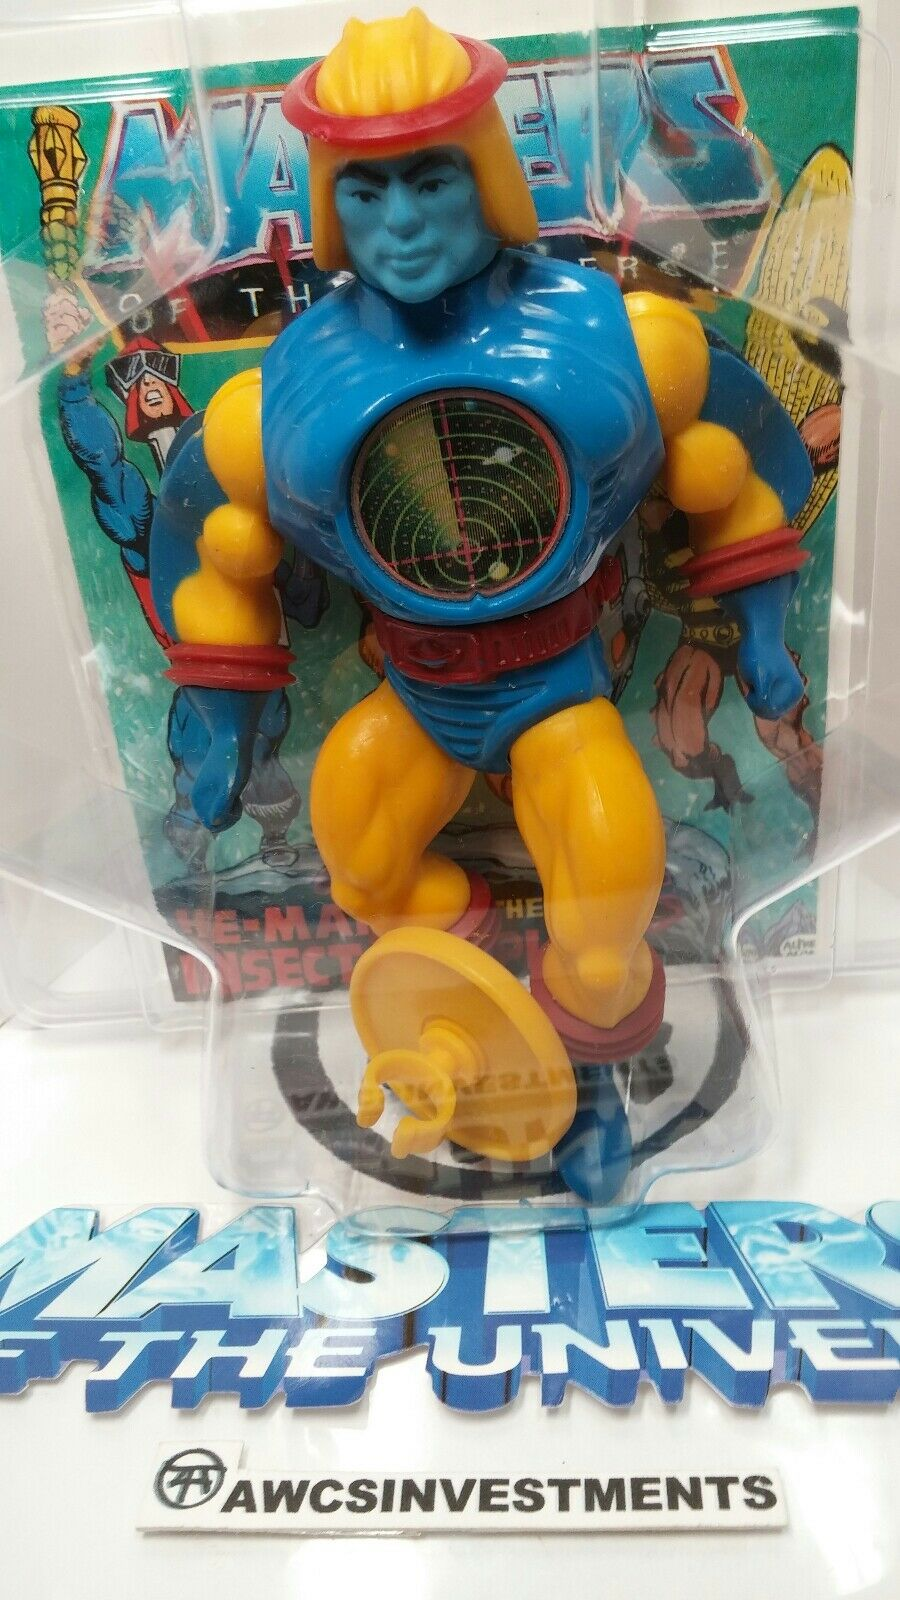 HE MAN MOTU 1980sSY KLONE chest discshieldcomicZoloworld discshieldcomicZoloworld discshieldcomicZoloworld Casesee pictures 0a019a